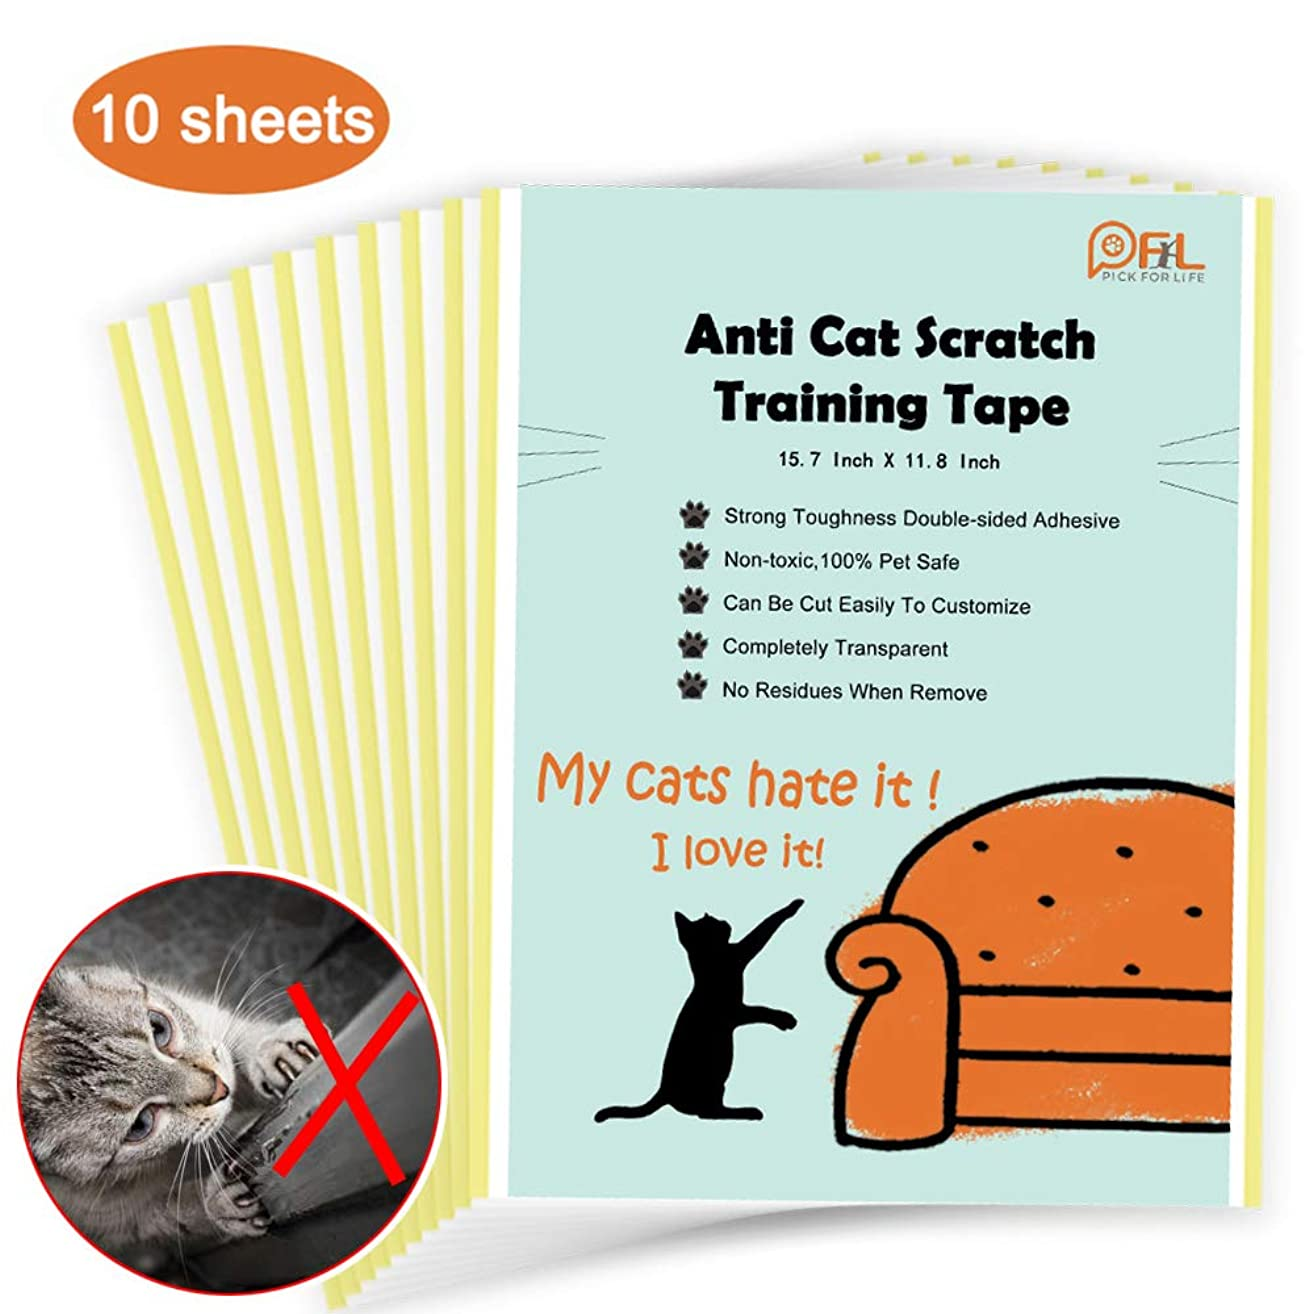 Cat Scratching Deterrent Tape, No Residue Anti Scratch Cat Training Tape for Couch, Removable Double Sided Sticky Adhesive Furniture Protector (Large Size 15.7in X 11.8in,10 Sheets)